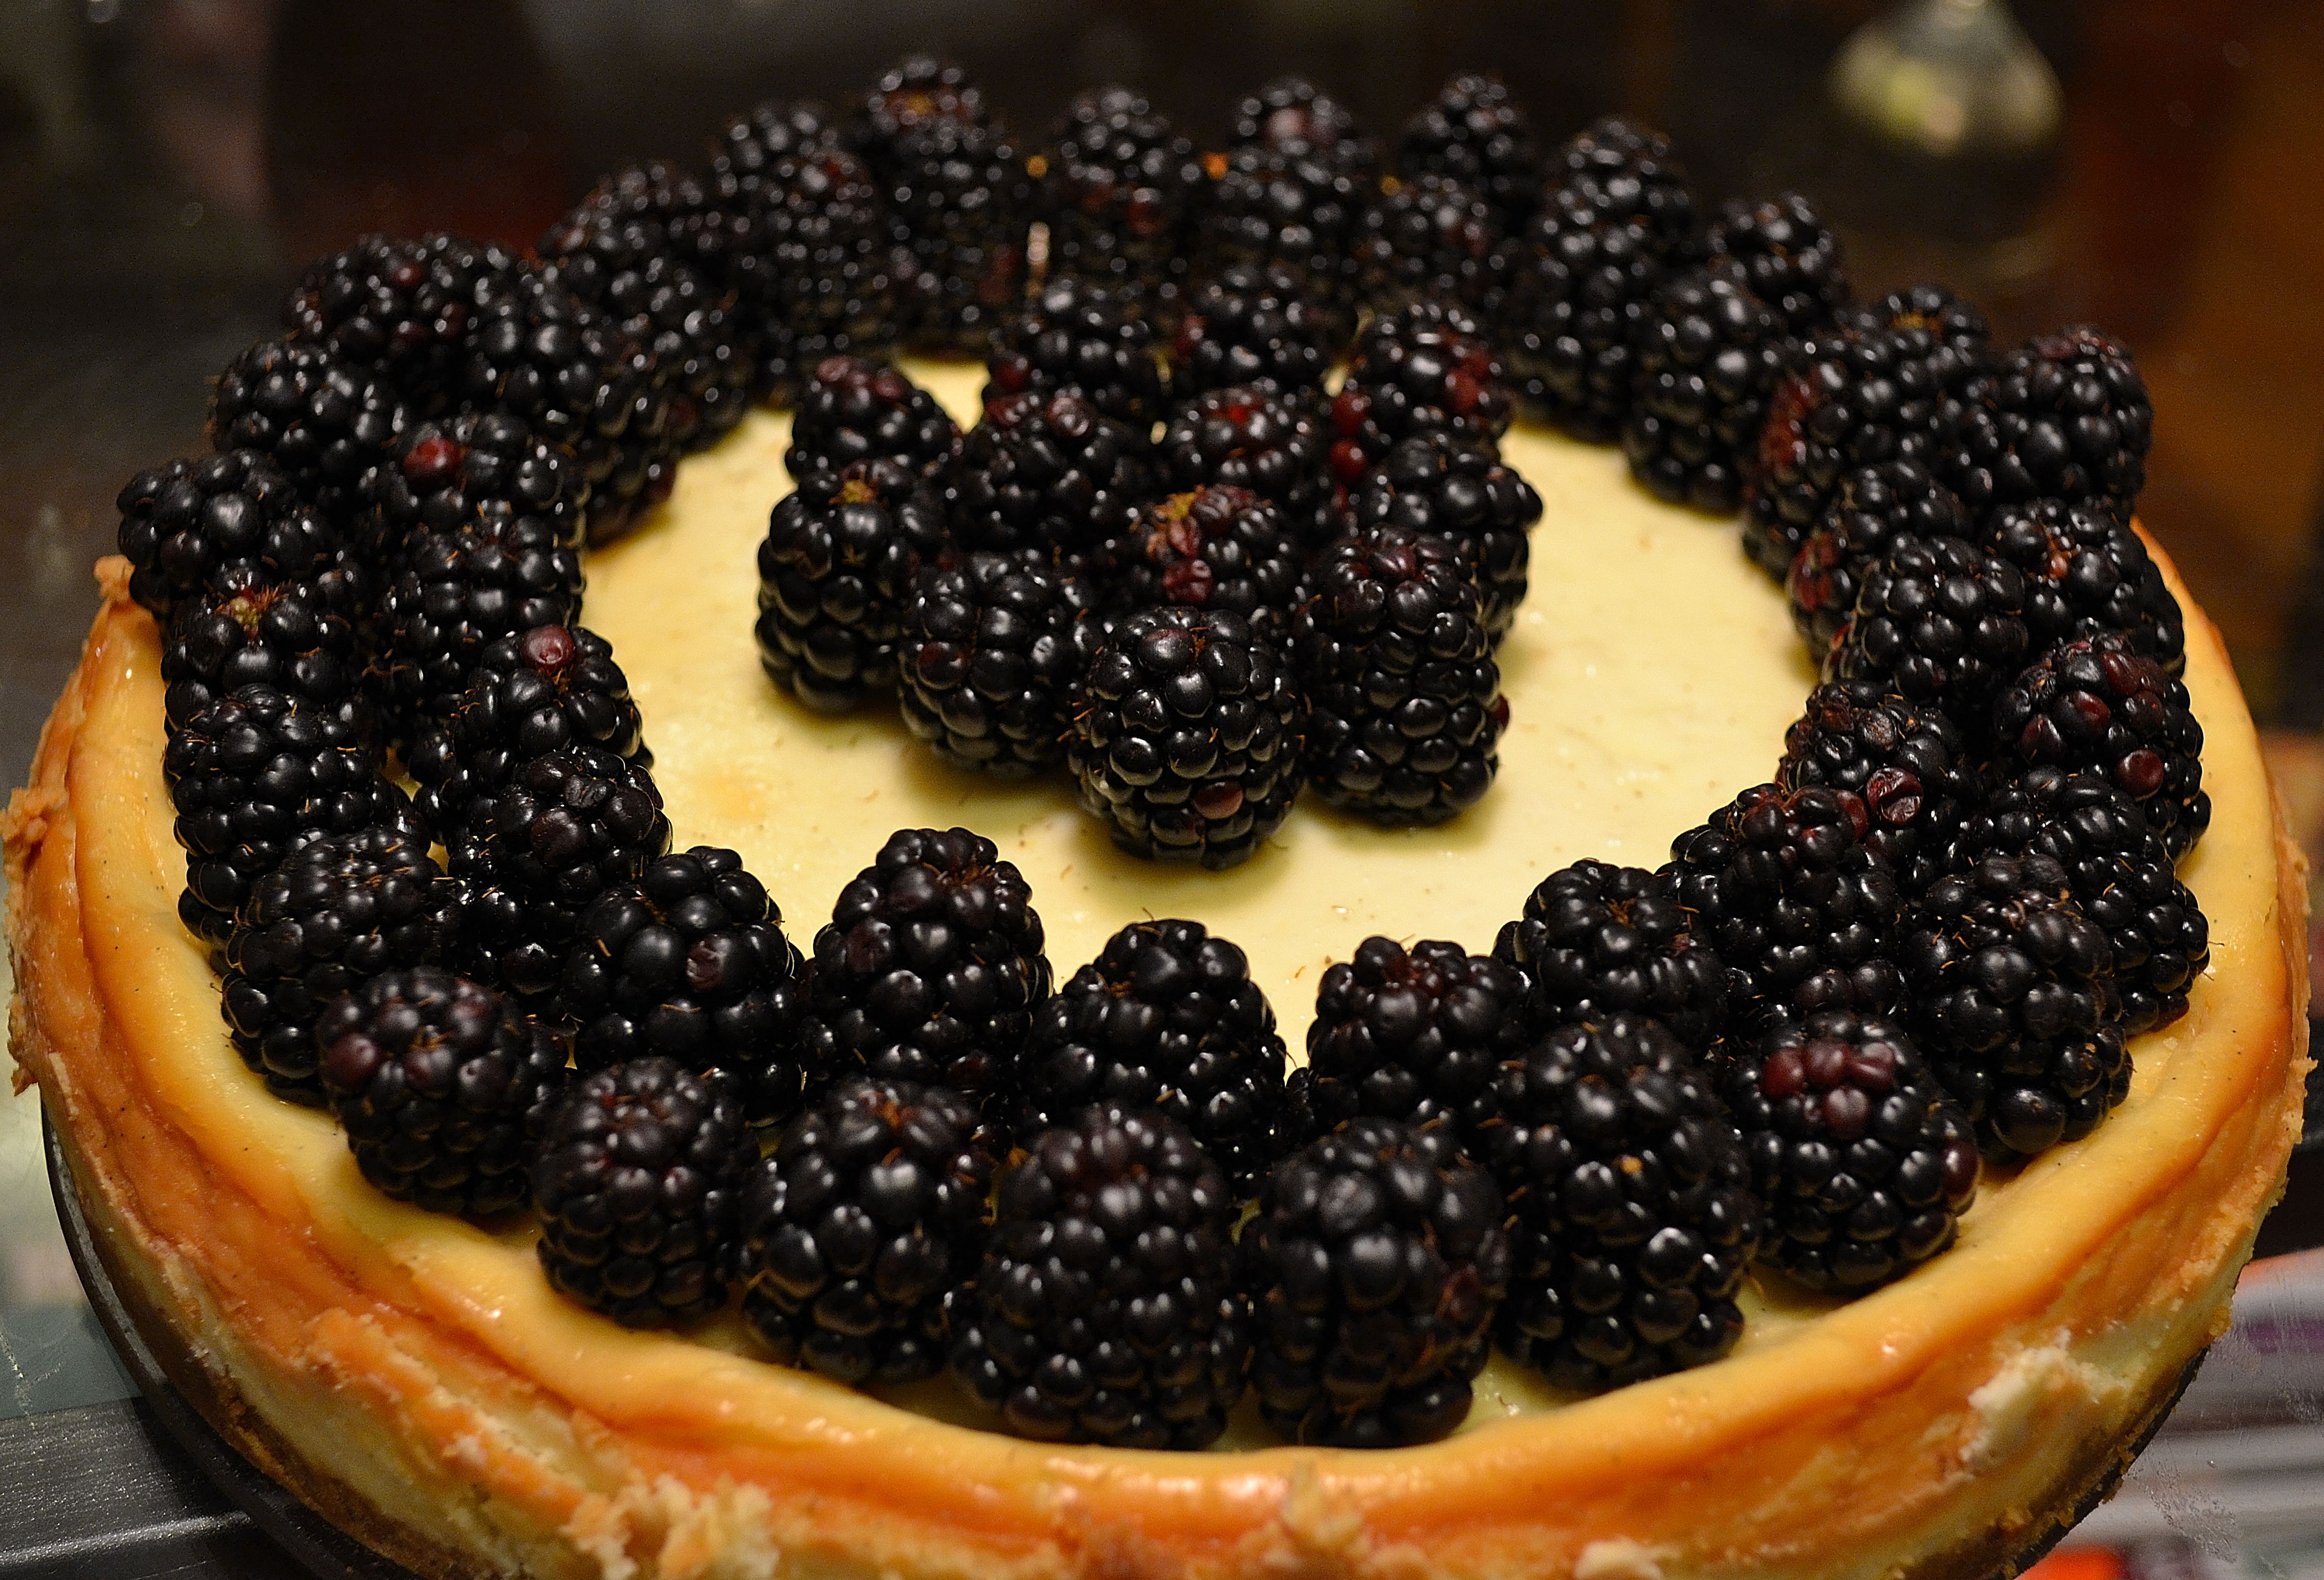 Vanilla bean and crme frache cheesecake with blackberries the vanilla bean and crme frache cheesecake with blackberries forumfinder Choice Image